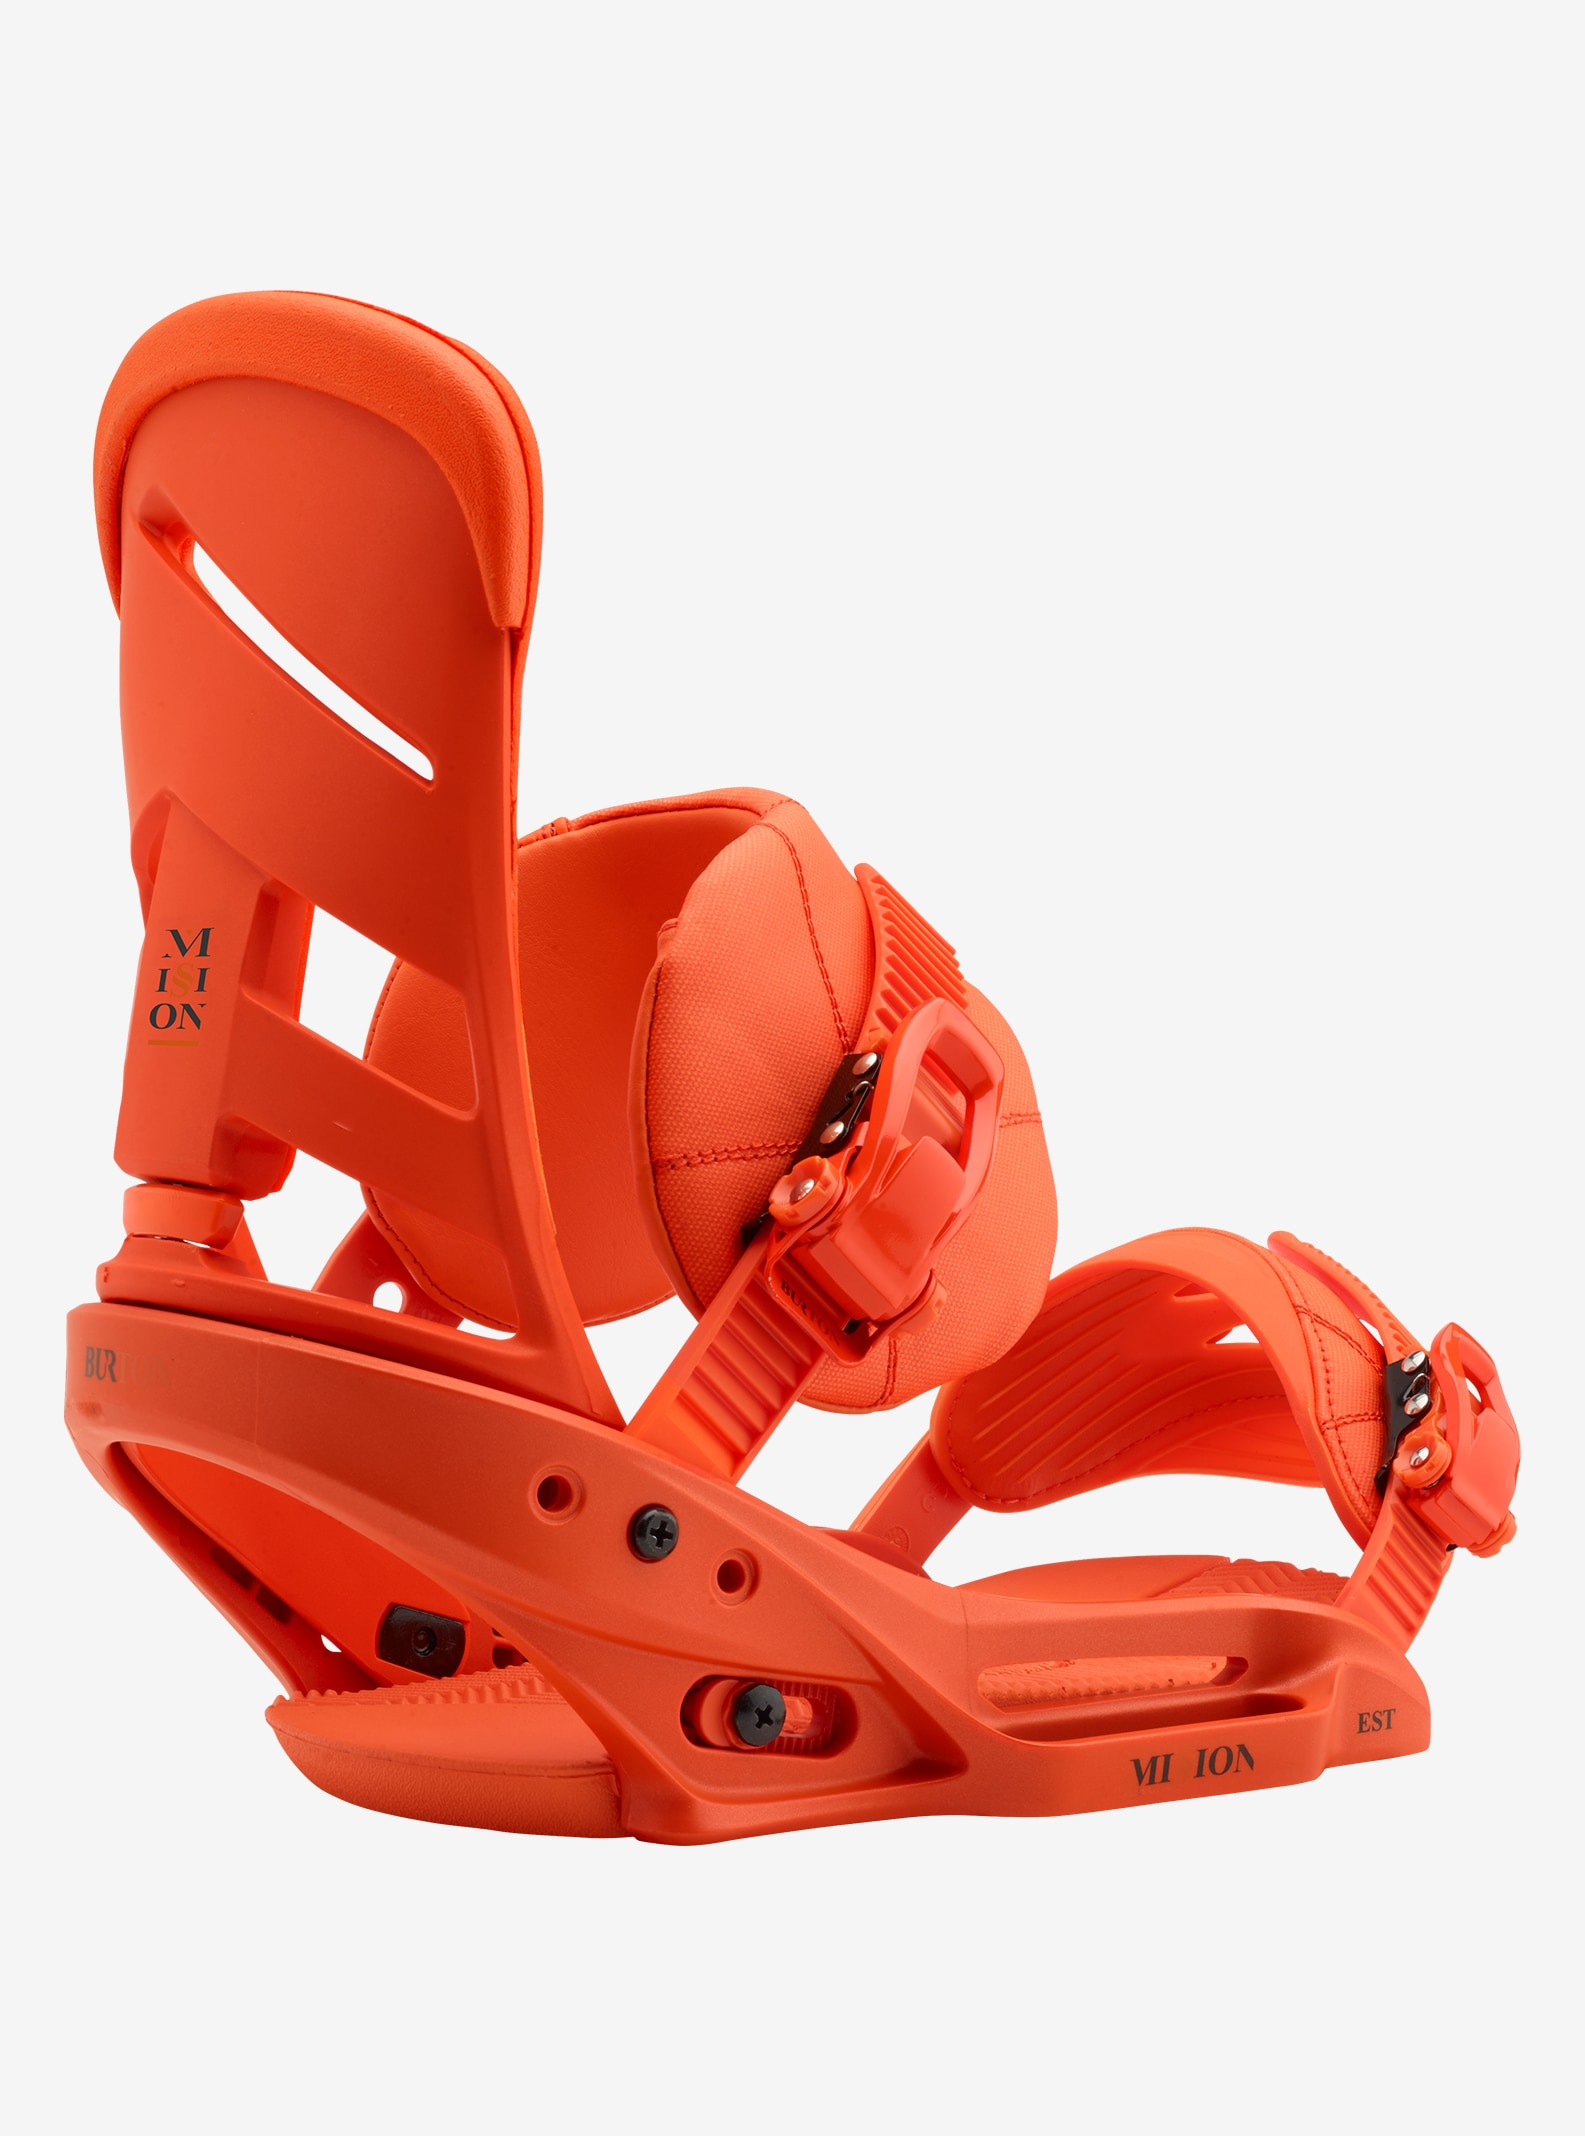 Men's Burton Mission EST Snowboard Binding shown in Orang Sick Le